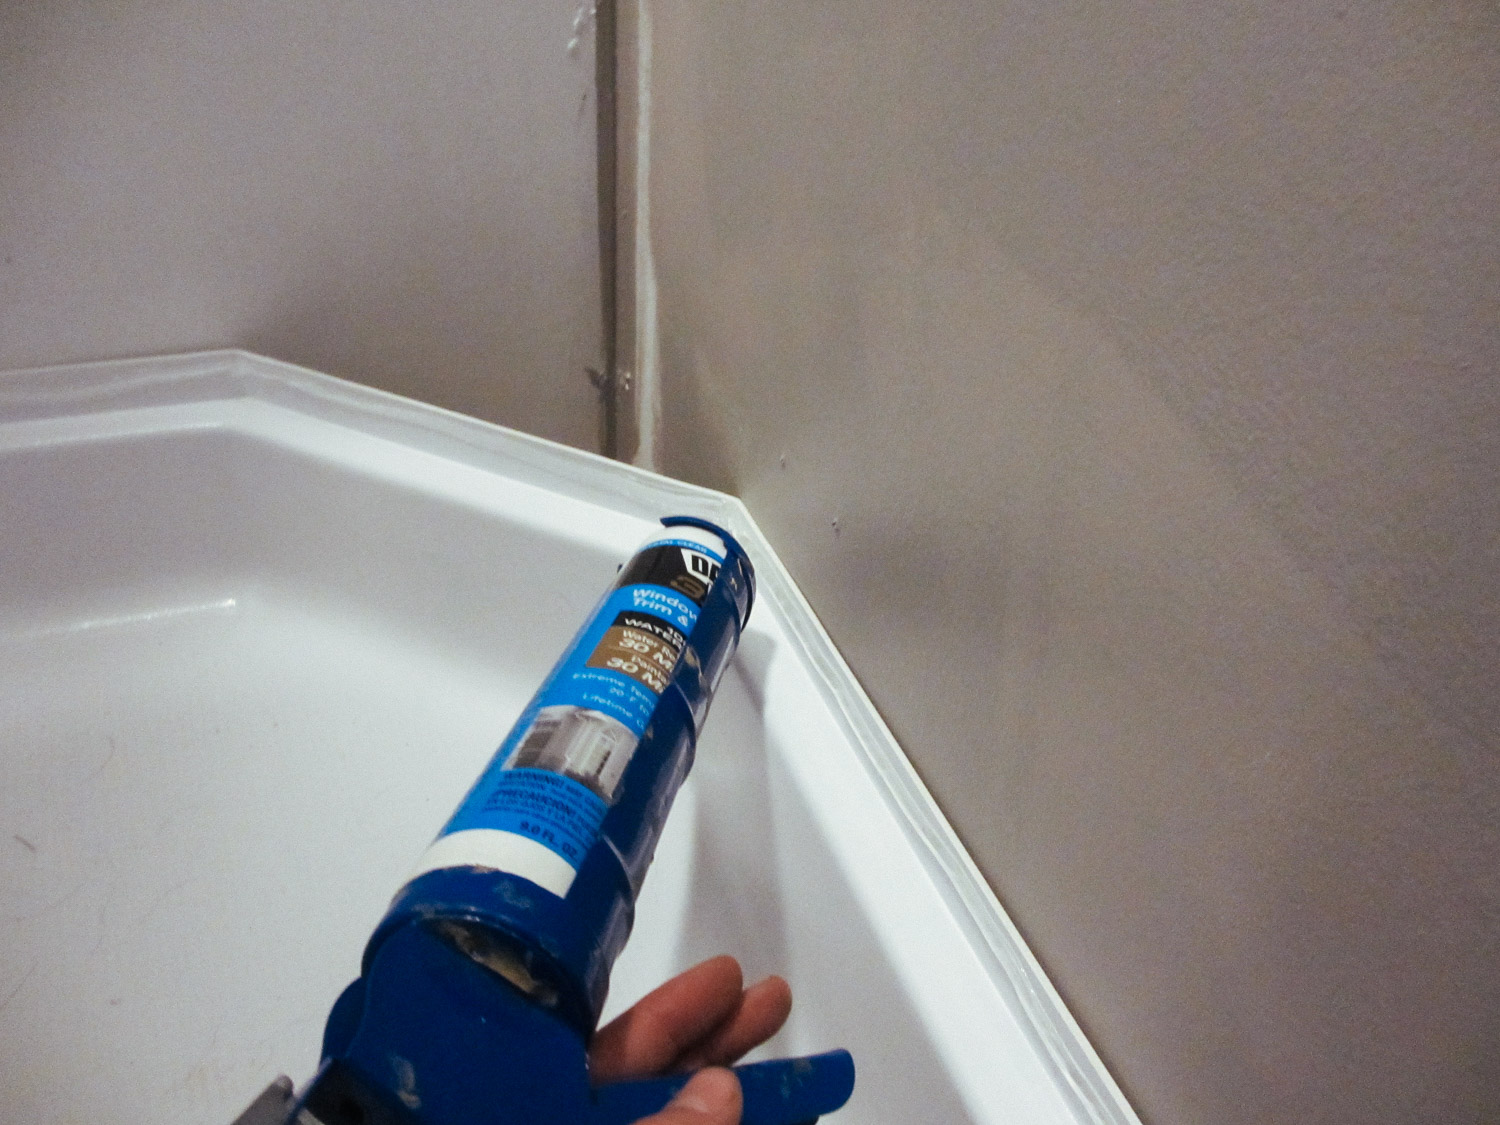 We caulked the top of the shower pan so it would adhere to the shower walls.